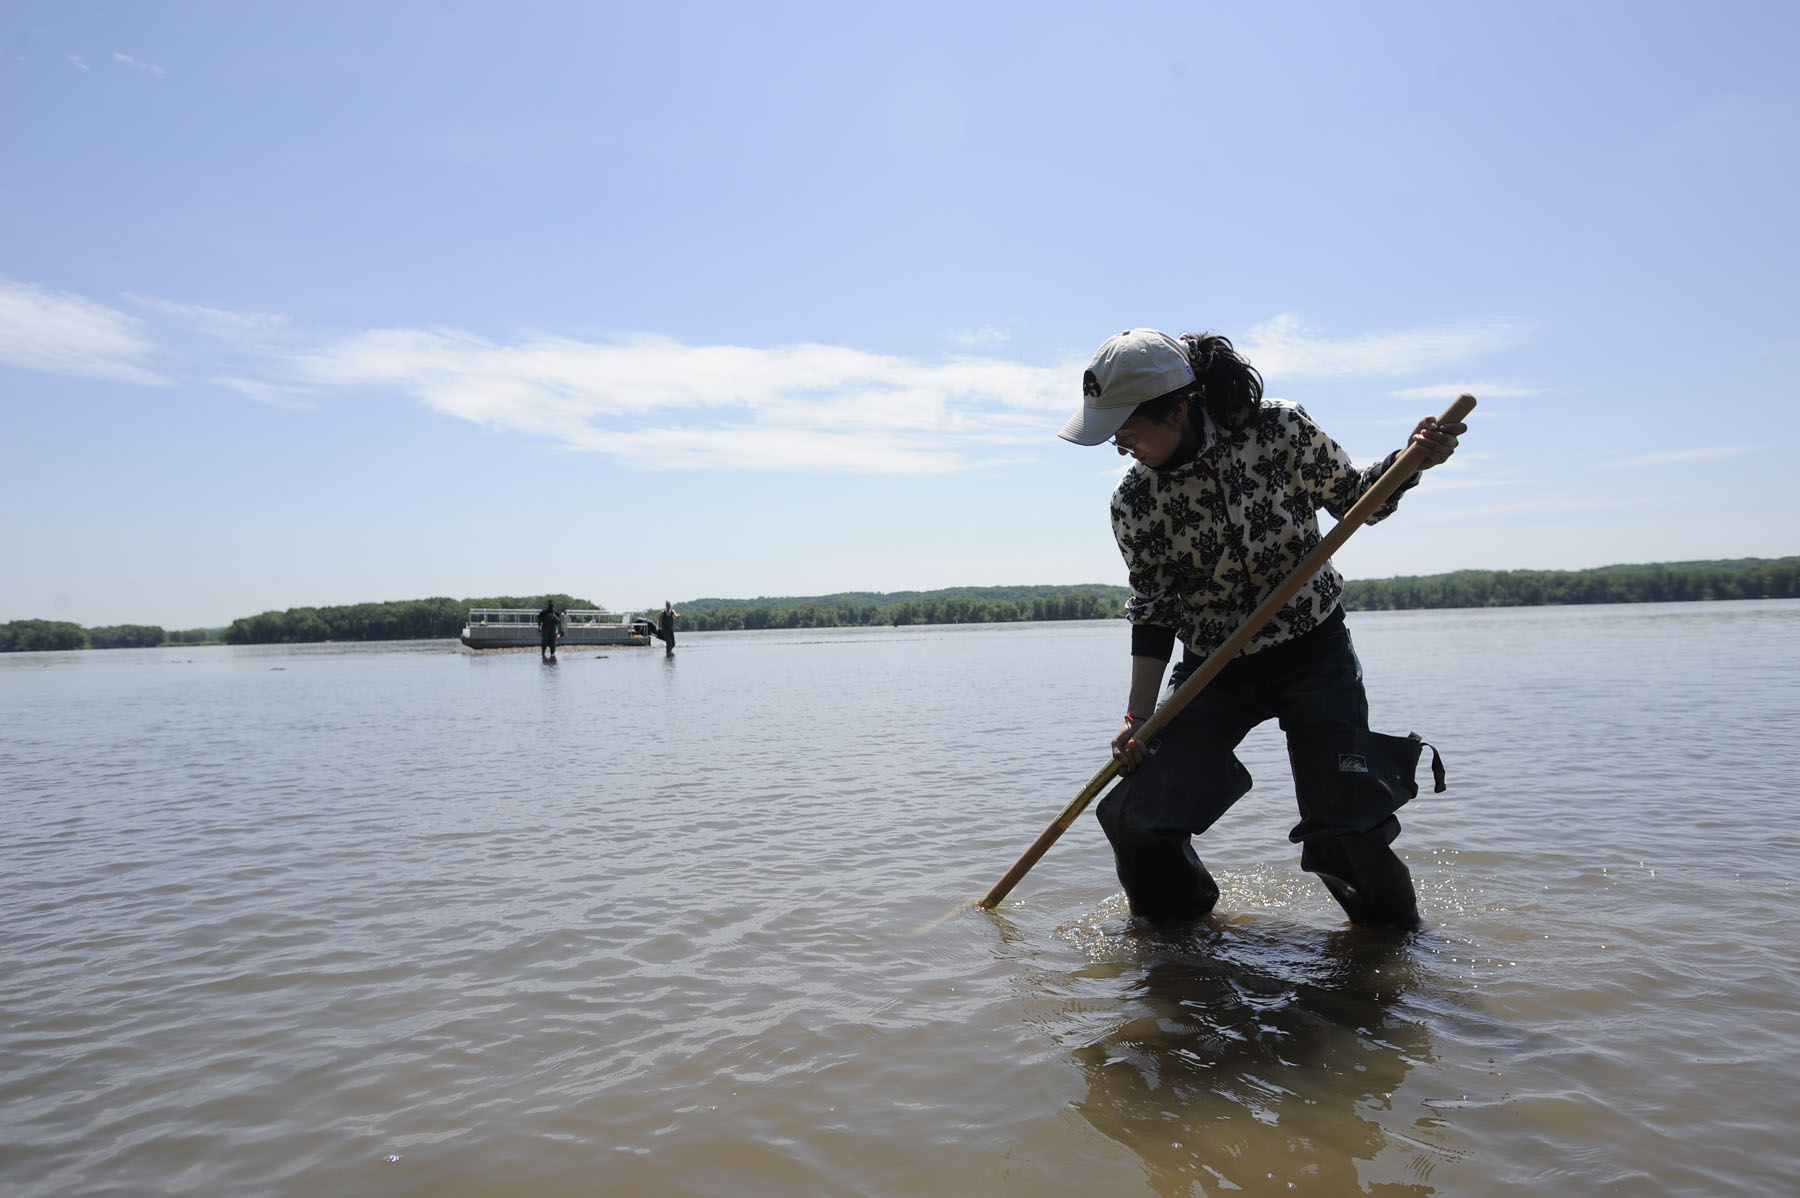 Visiting Scholar Peifang Wang digs for mussels in the Mississippi River.